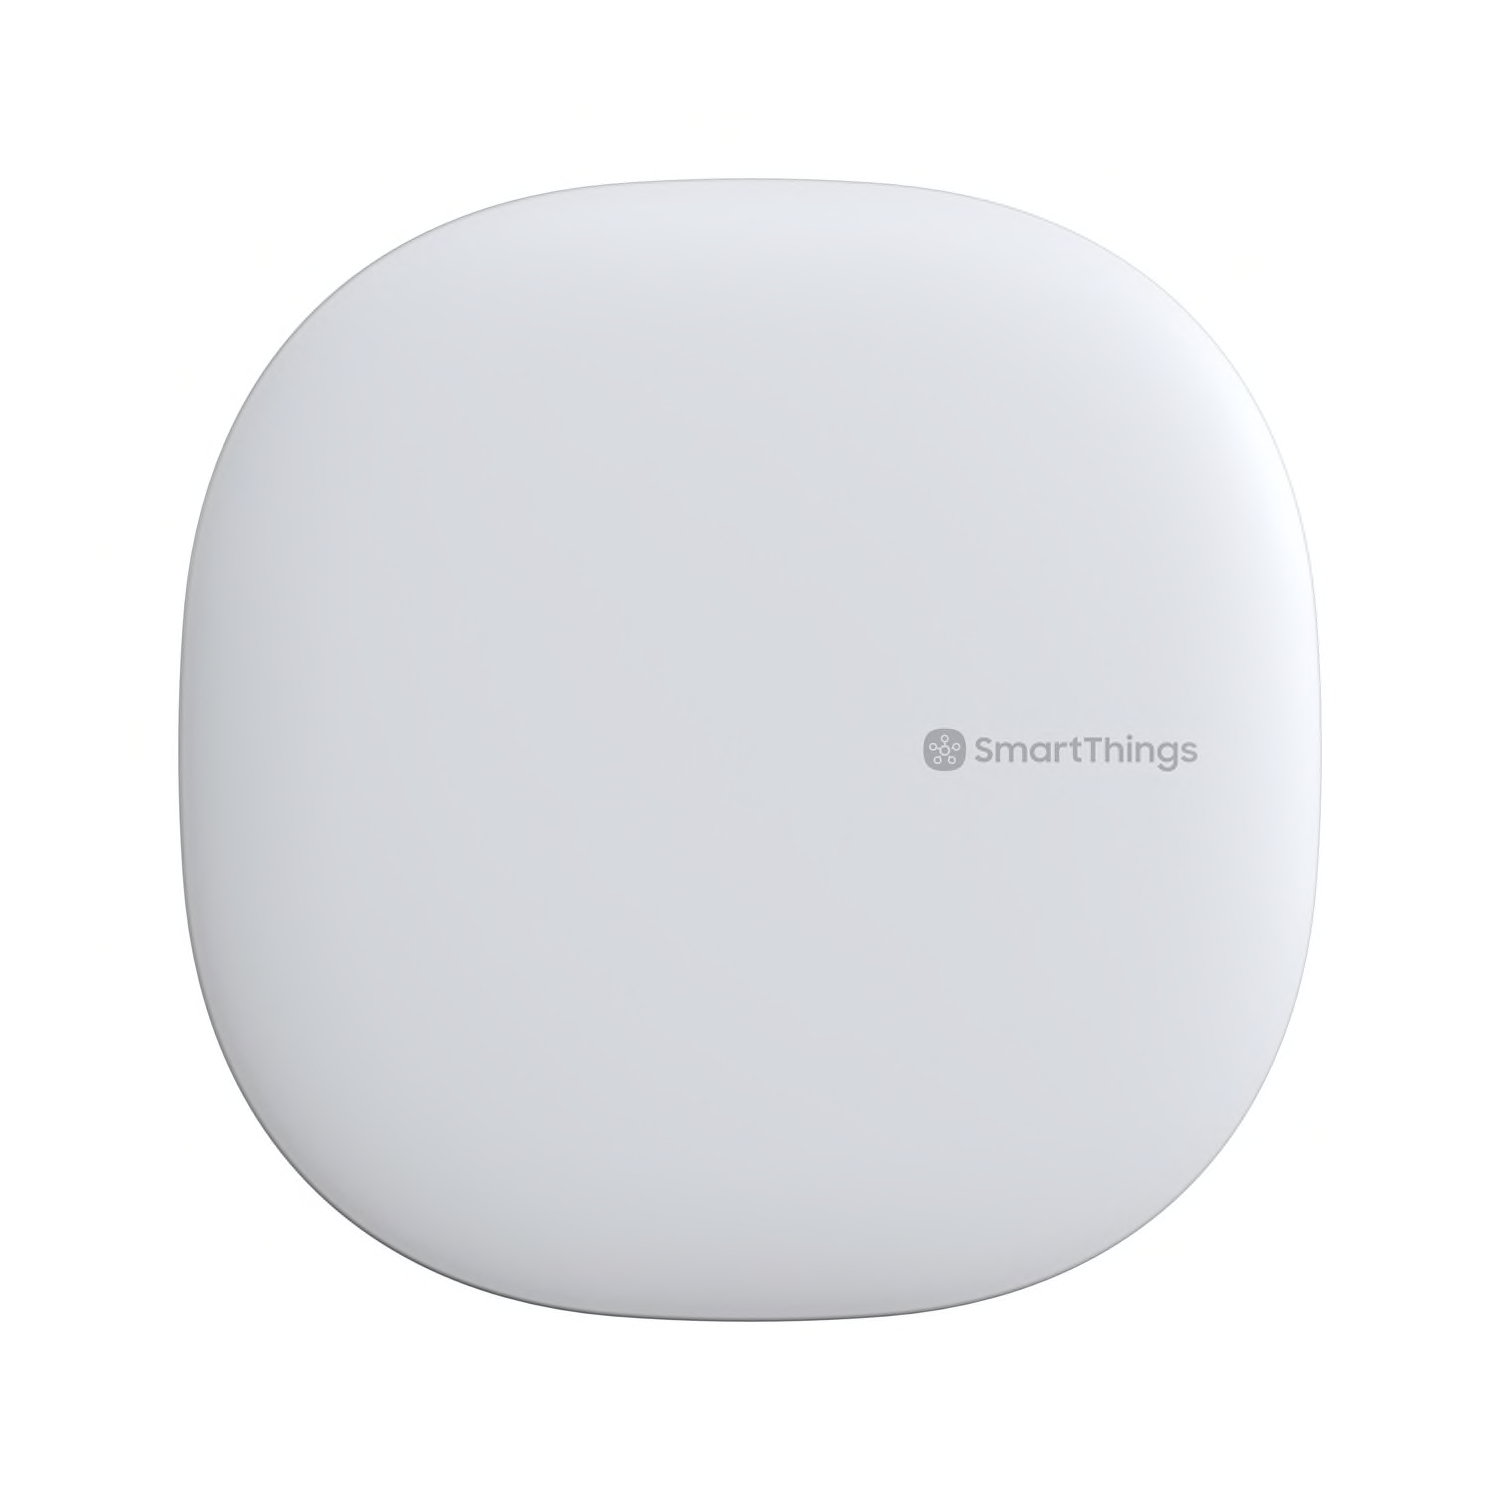 Samsung Smartthings Hub 3rd Limota Home Automation